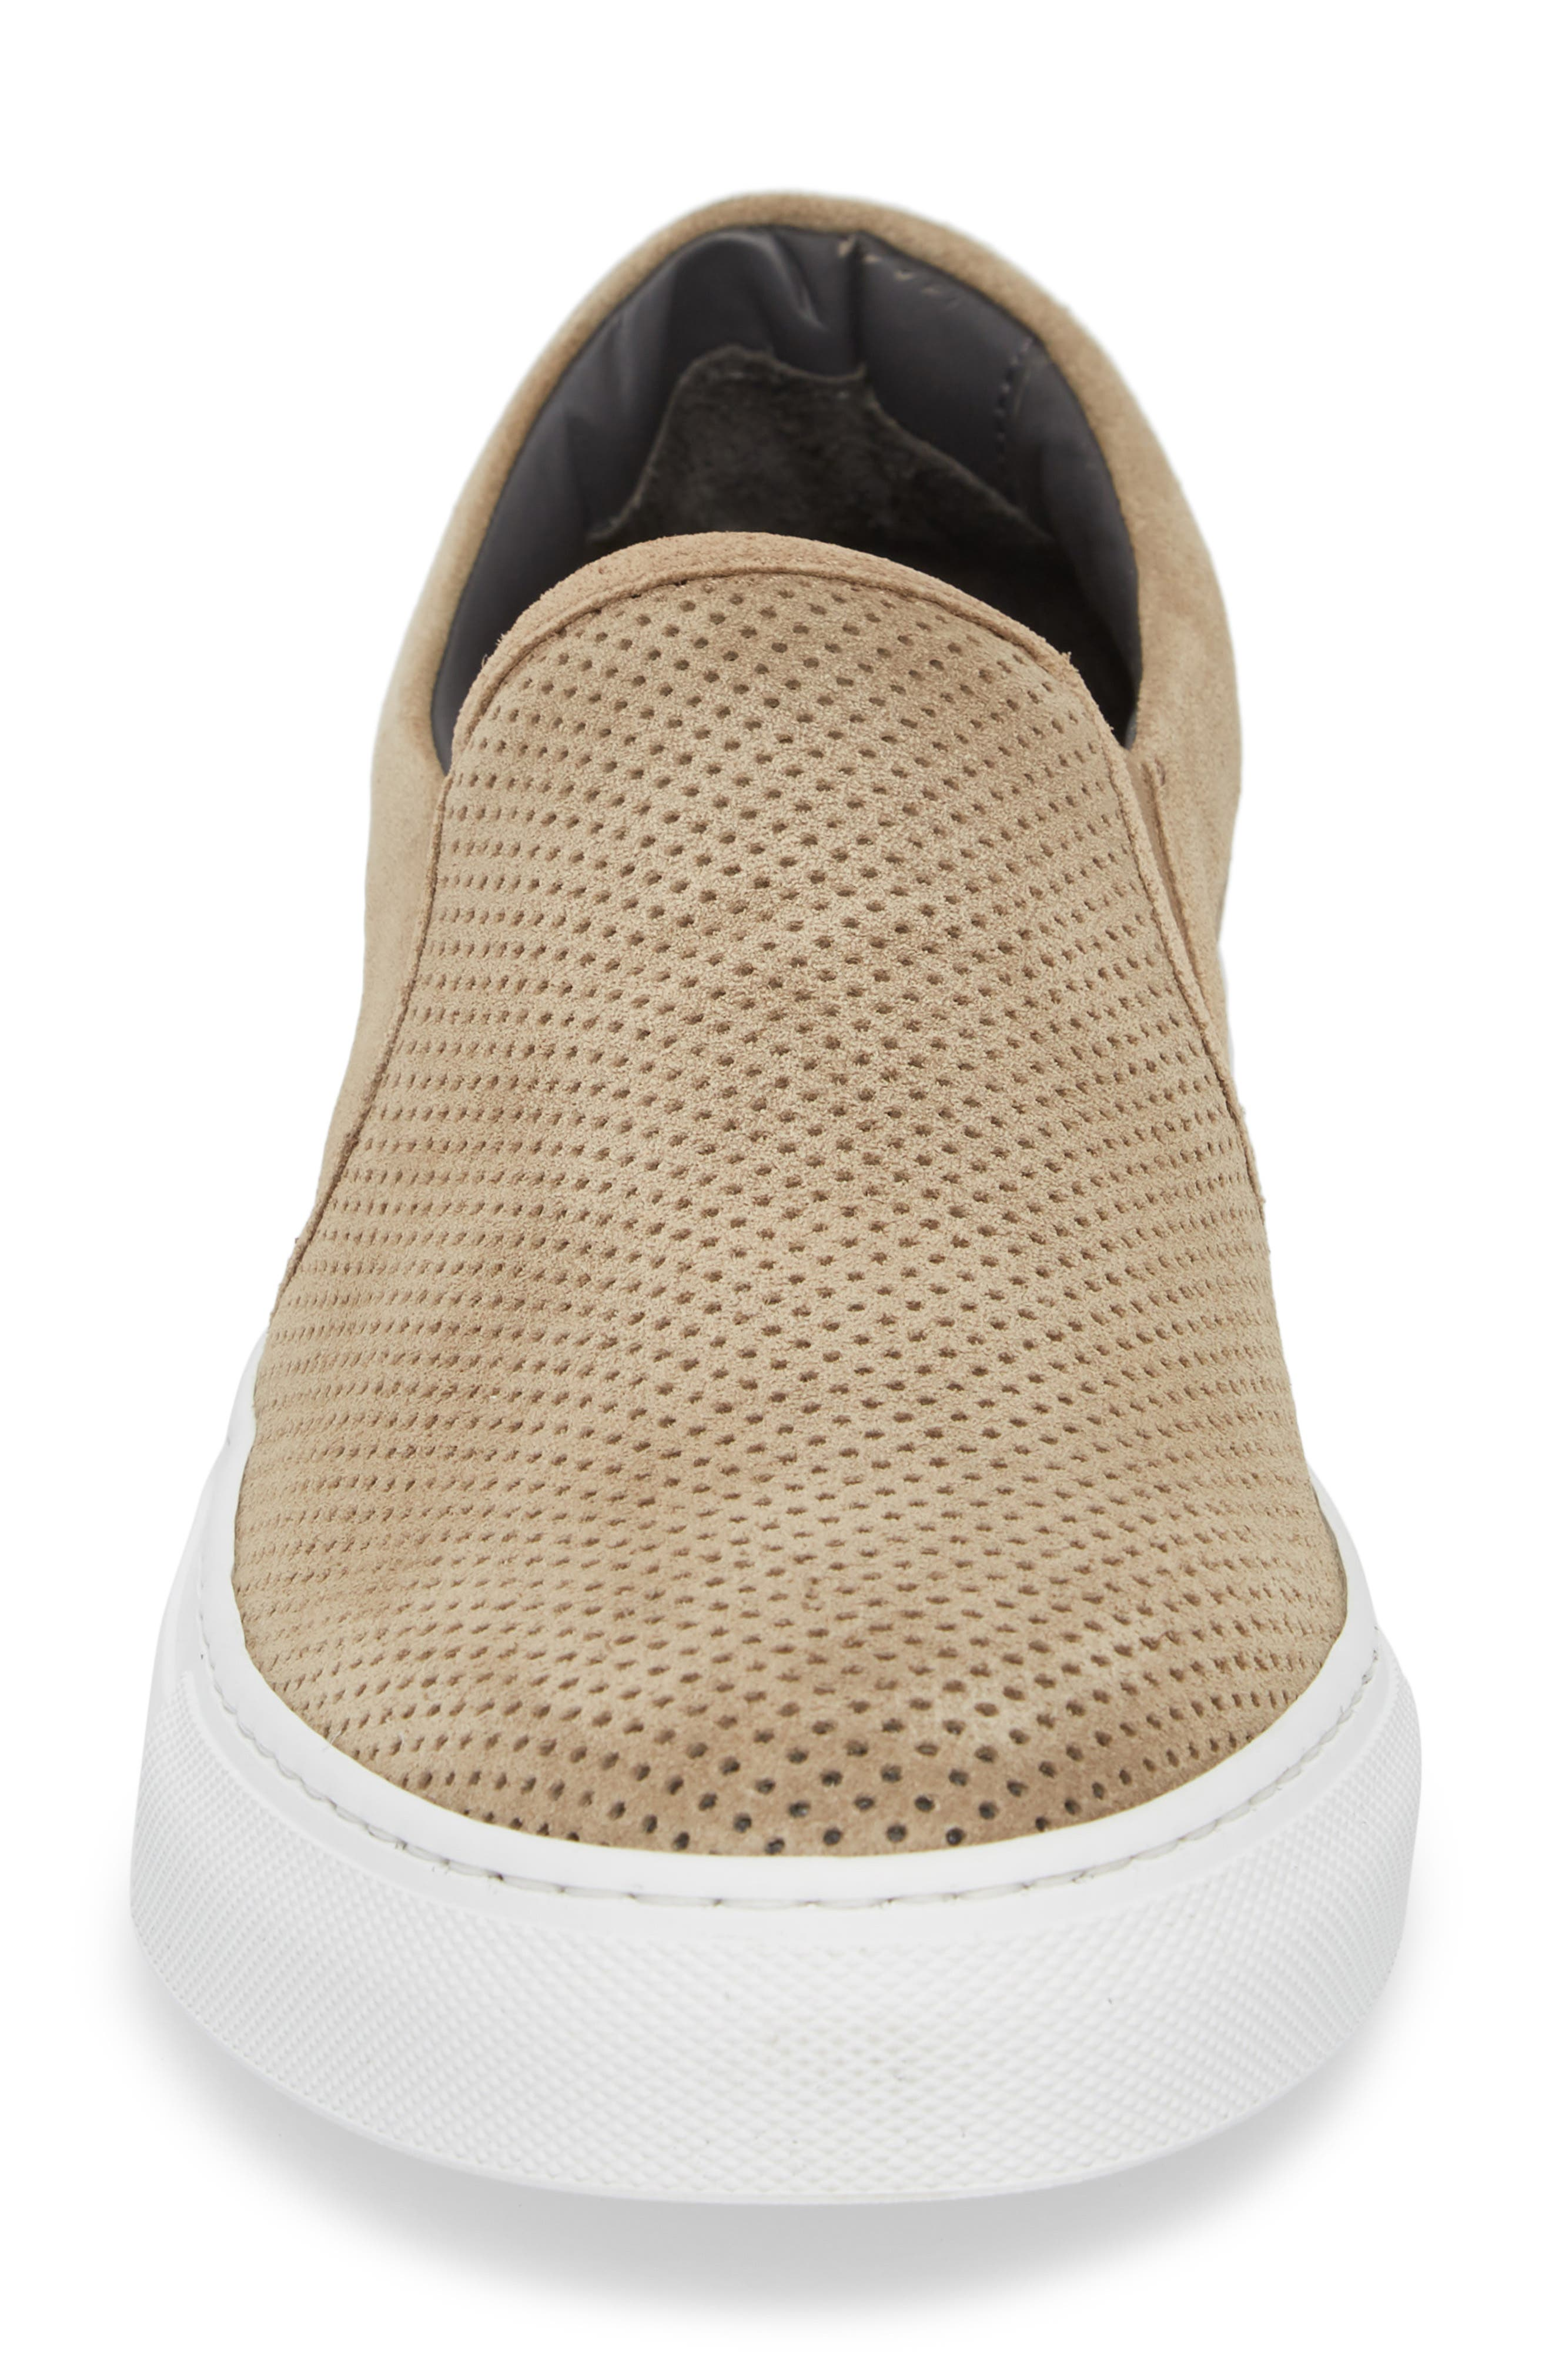 Buelton Perforated Slip-On Sneaker,                             Alternate thumbnail 4, color,                             BROWN SUEDE